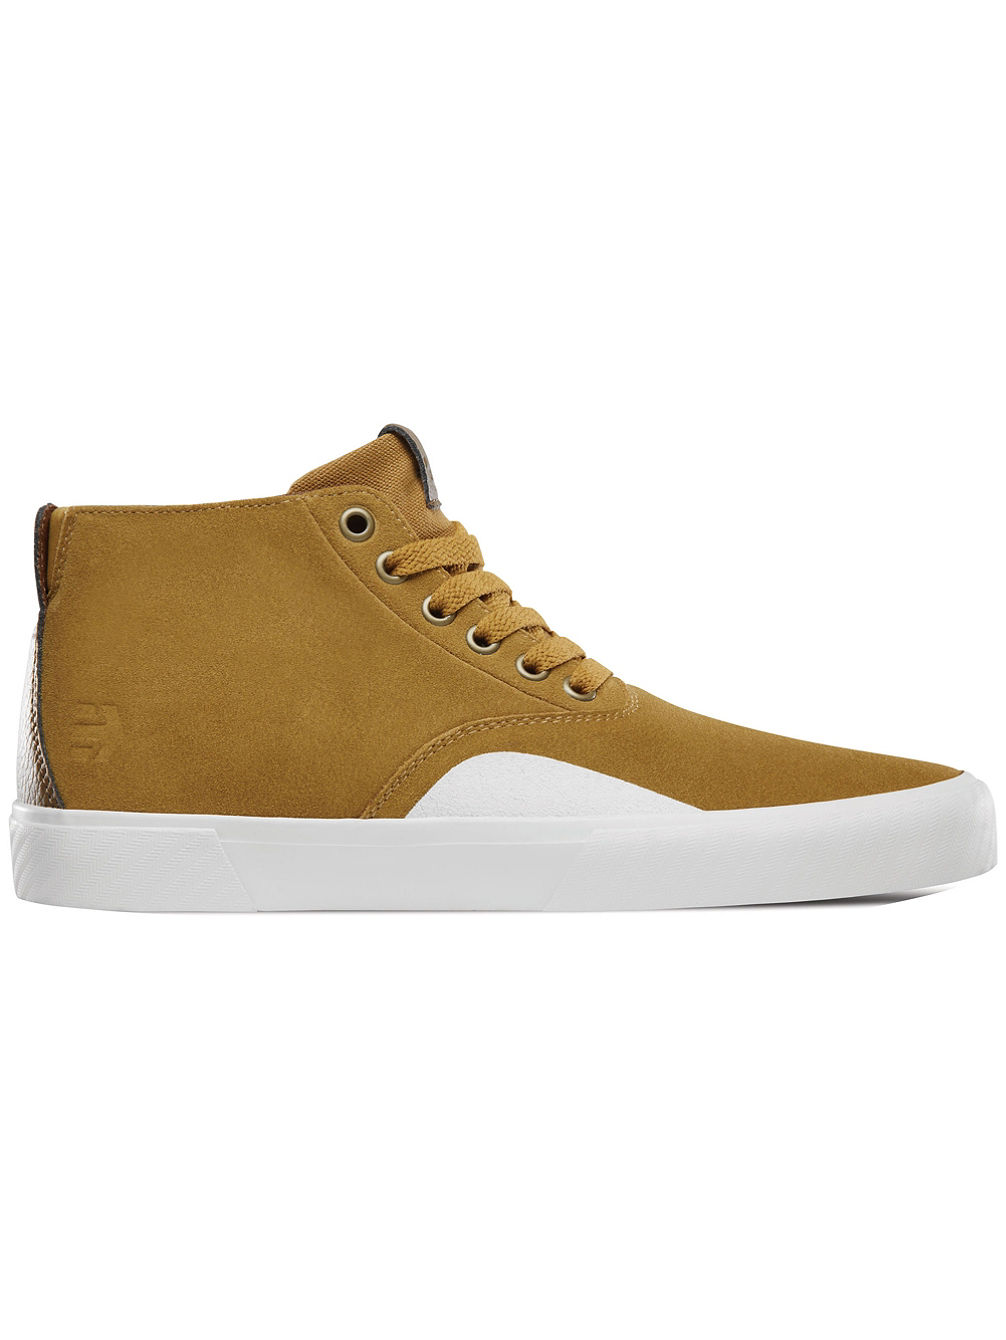 Jameson Vulc MT Zapatillas de skate